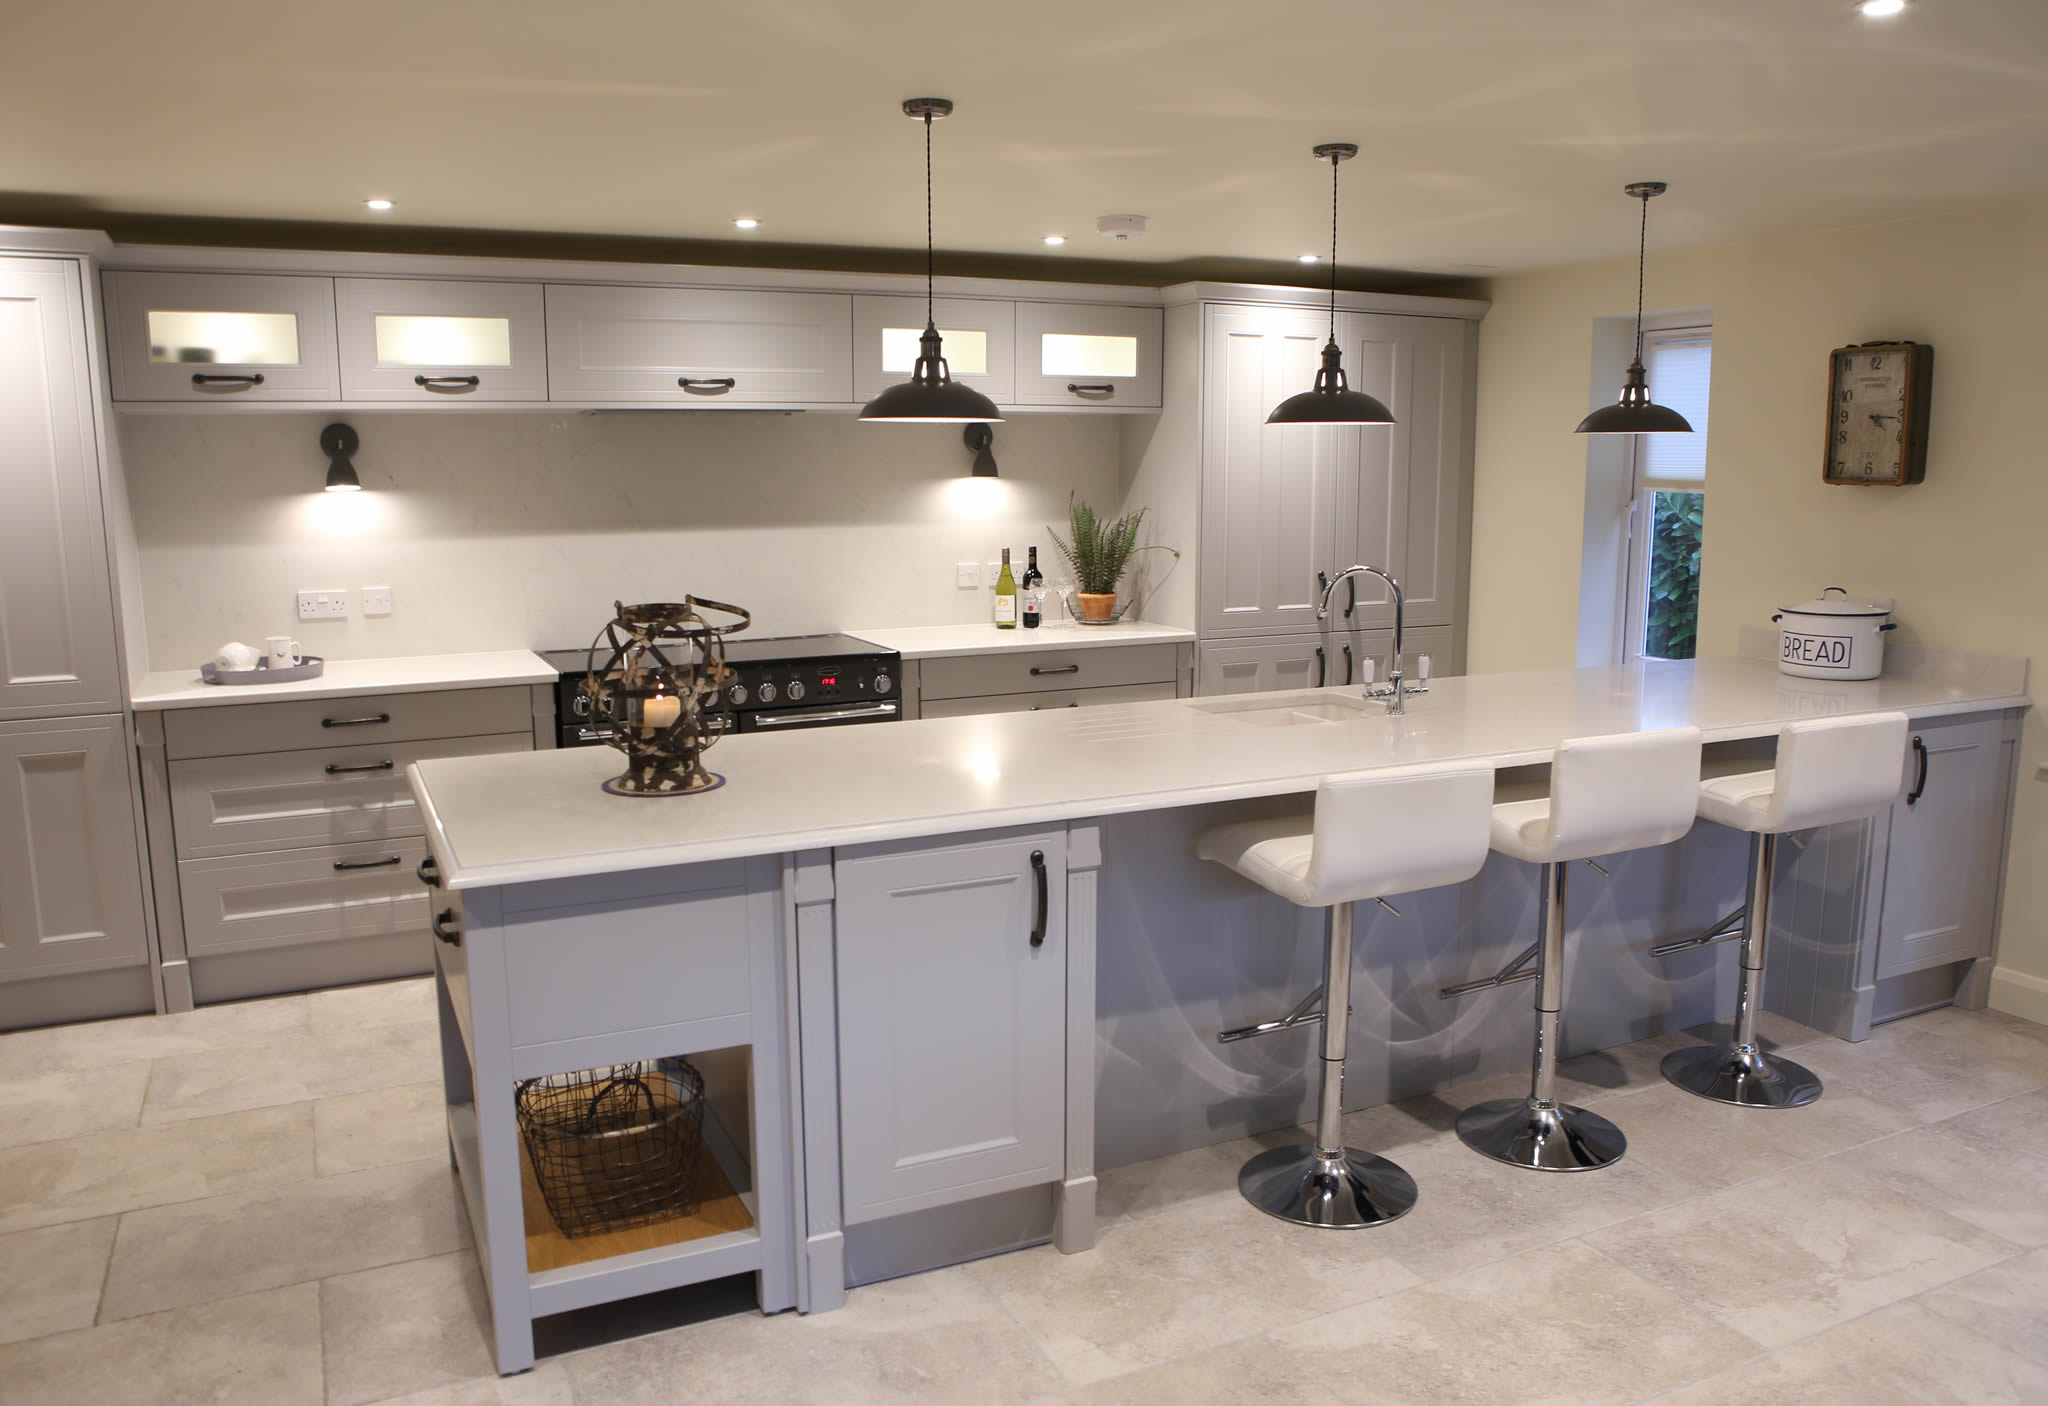 New shaker-style kitchen at Deben near Stowmarket, Suffolk